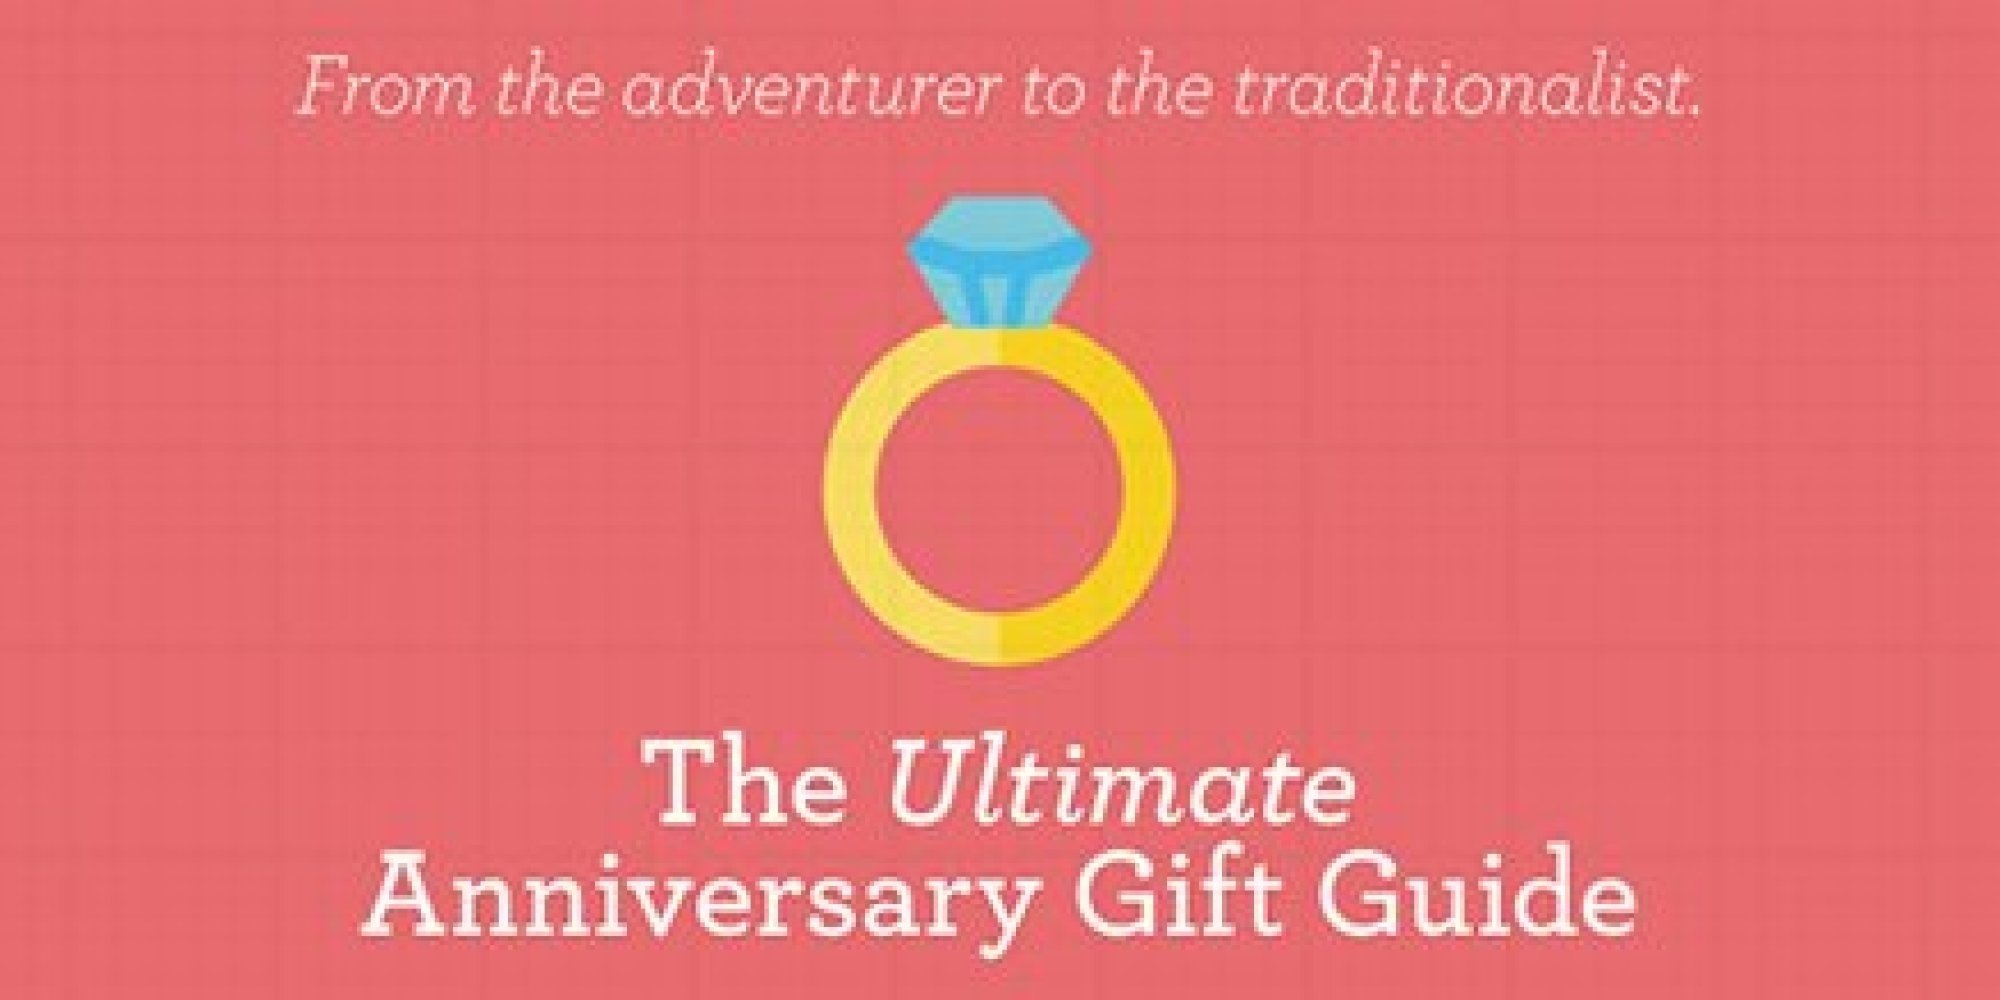 10 Best 9 Year Anniversary Gift Ideas the ultimate anniversary gift guide for every kind of spouse huffpost 3 2020